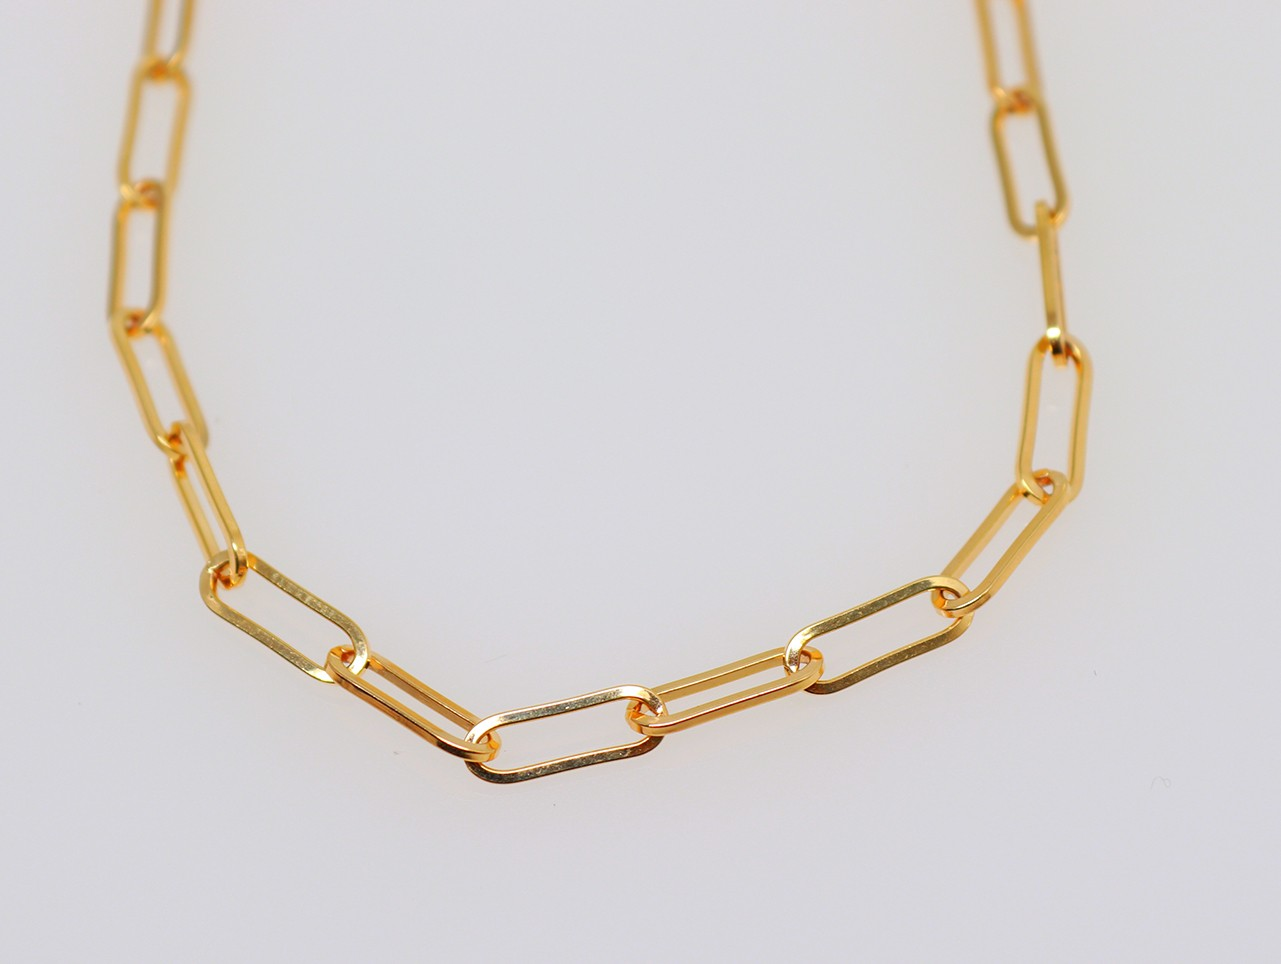 9ct yellow gold 60cm chain